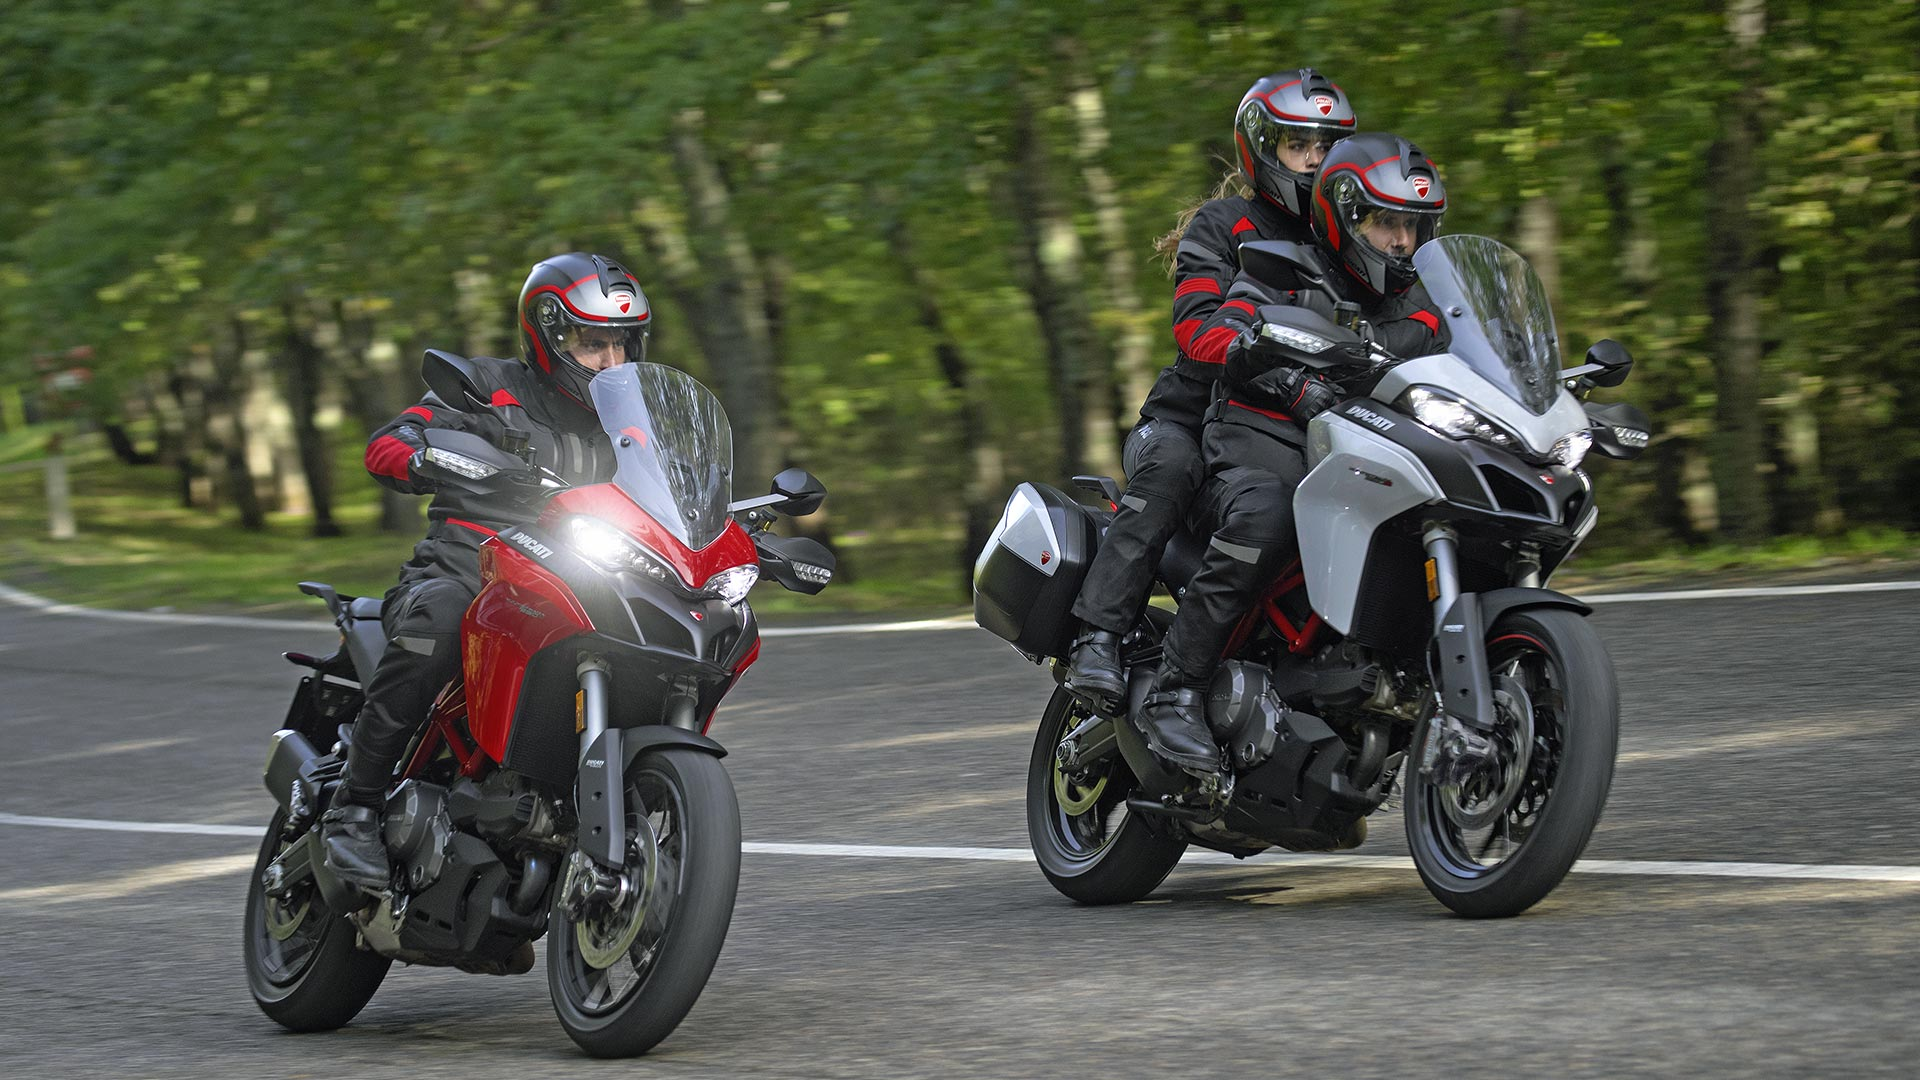 Astounding Ducati Multistrada 950 Your Extraordinary Journey Caraccident5 Cool Chair Designs And Ideas Caraccident5Info